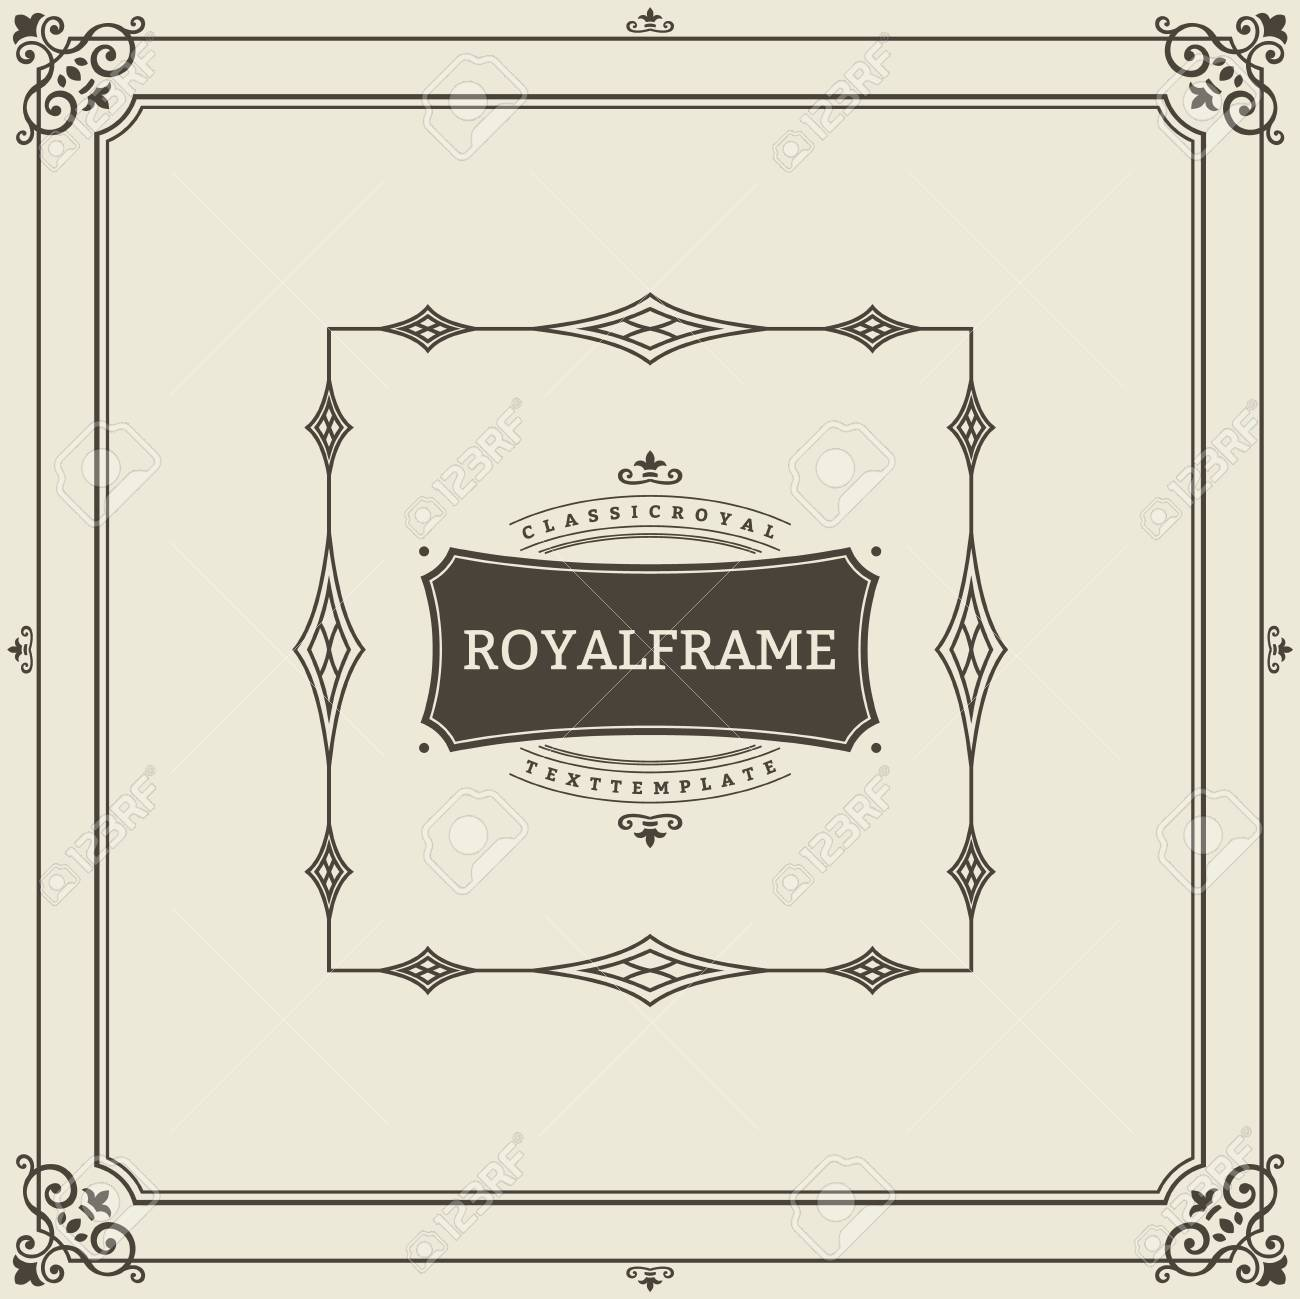 Vintage Ornament Greeting Card Vector Template. Retro Luxury Invitation, Royal Certificate. Flourishes frame. Vintage Background, Vintage Frame, Vintage Ornament, Ornaments Vector, Ornamental Frame. - 125240246